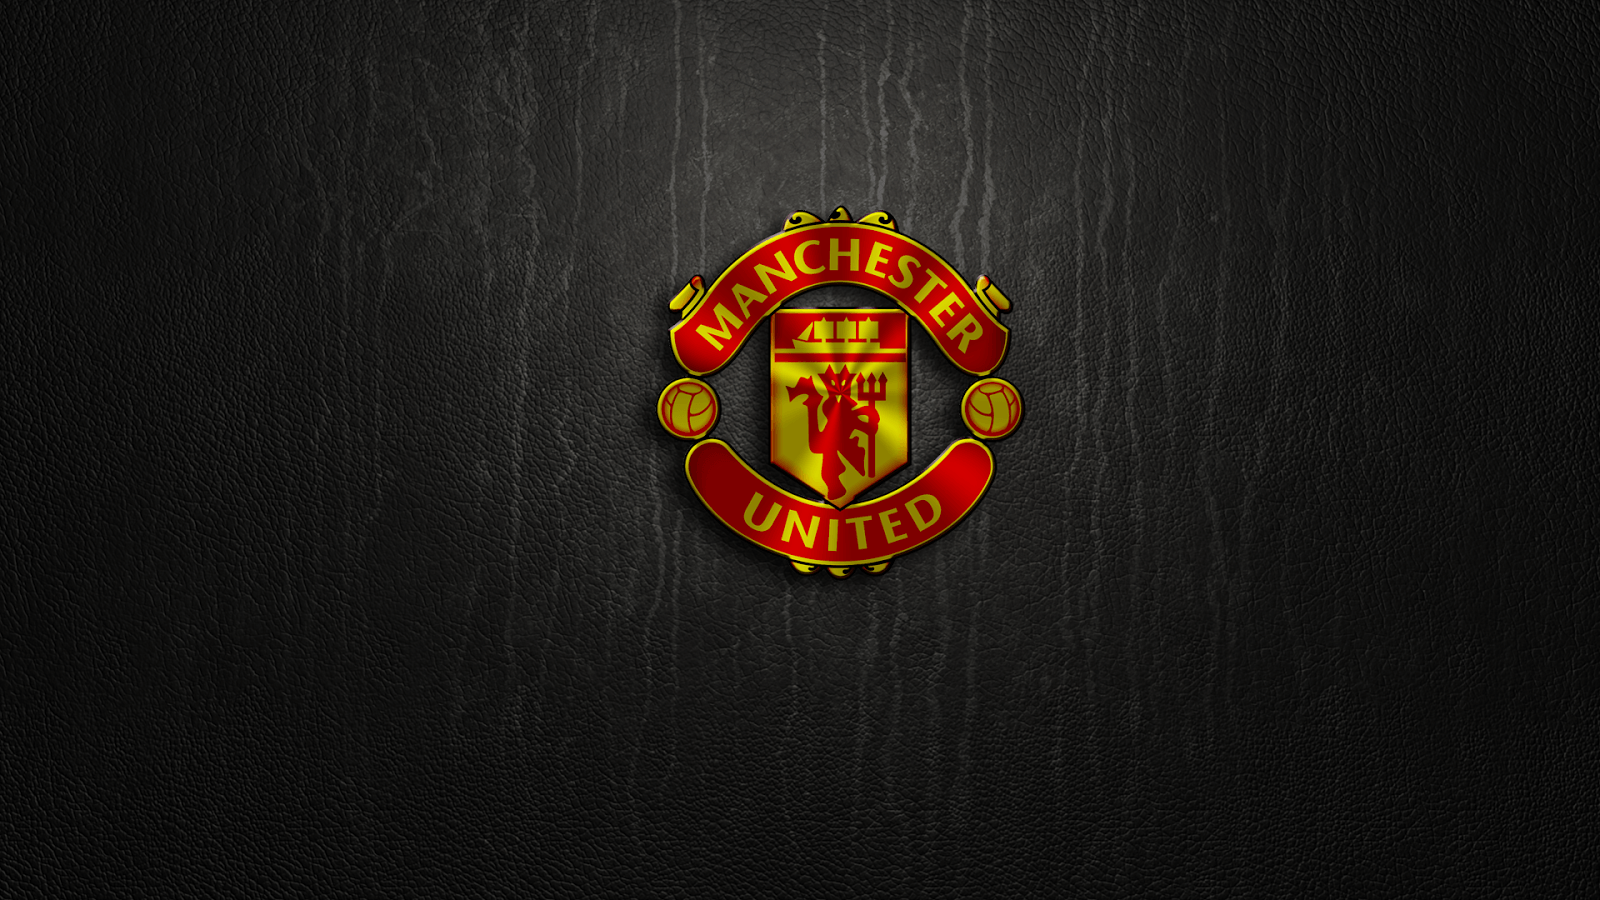 Manchester United Wallpapers 2017 Logo Wallpaper Cave